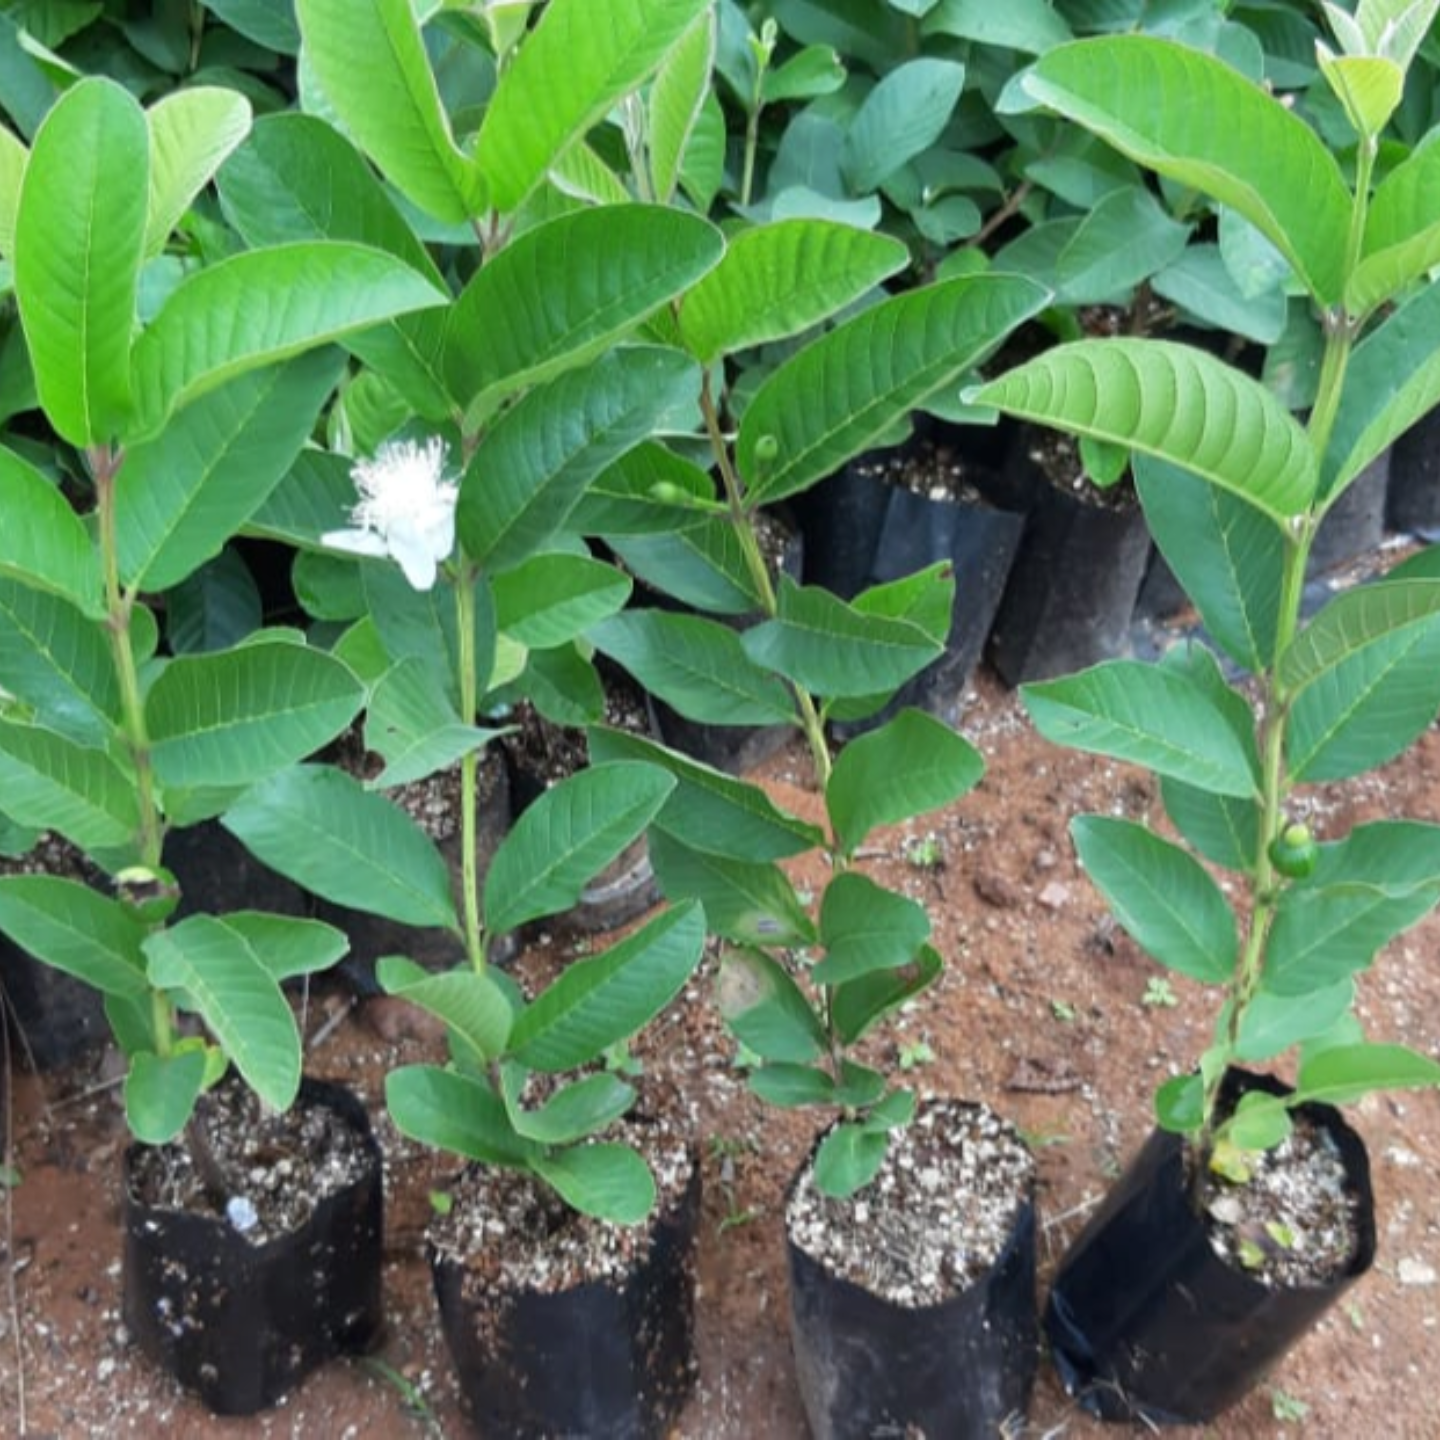 Taiwan pink Clone Plant 500 plants 45 rupees per plant